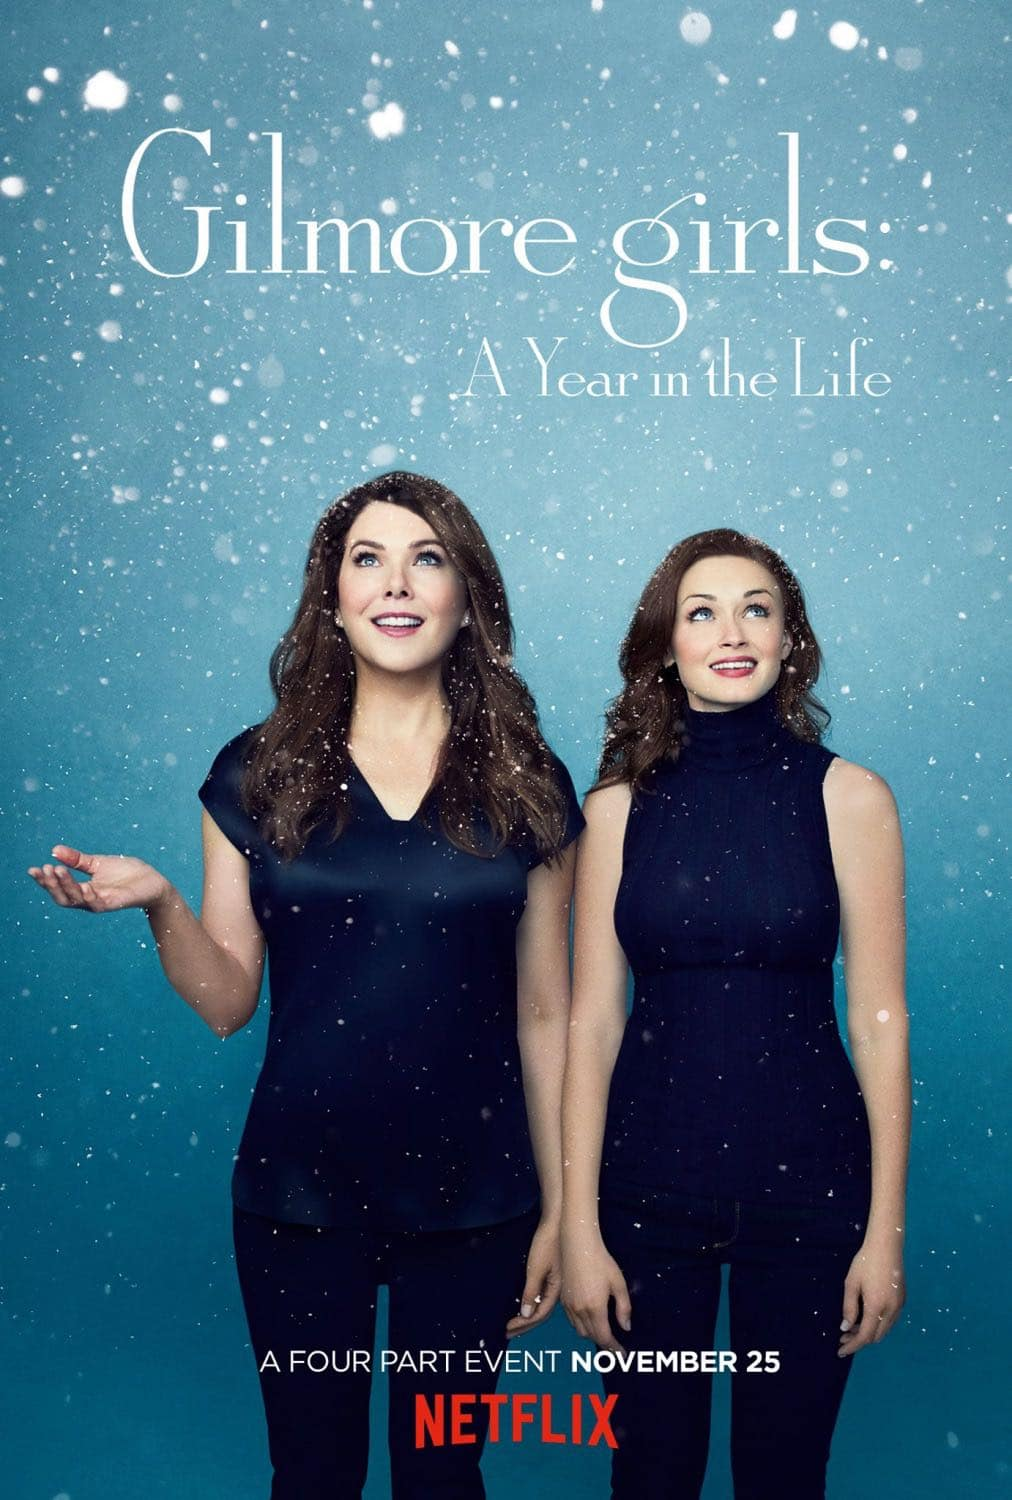 gilmore-girls-a-year-in-the-life-poster-1